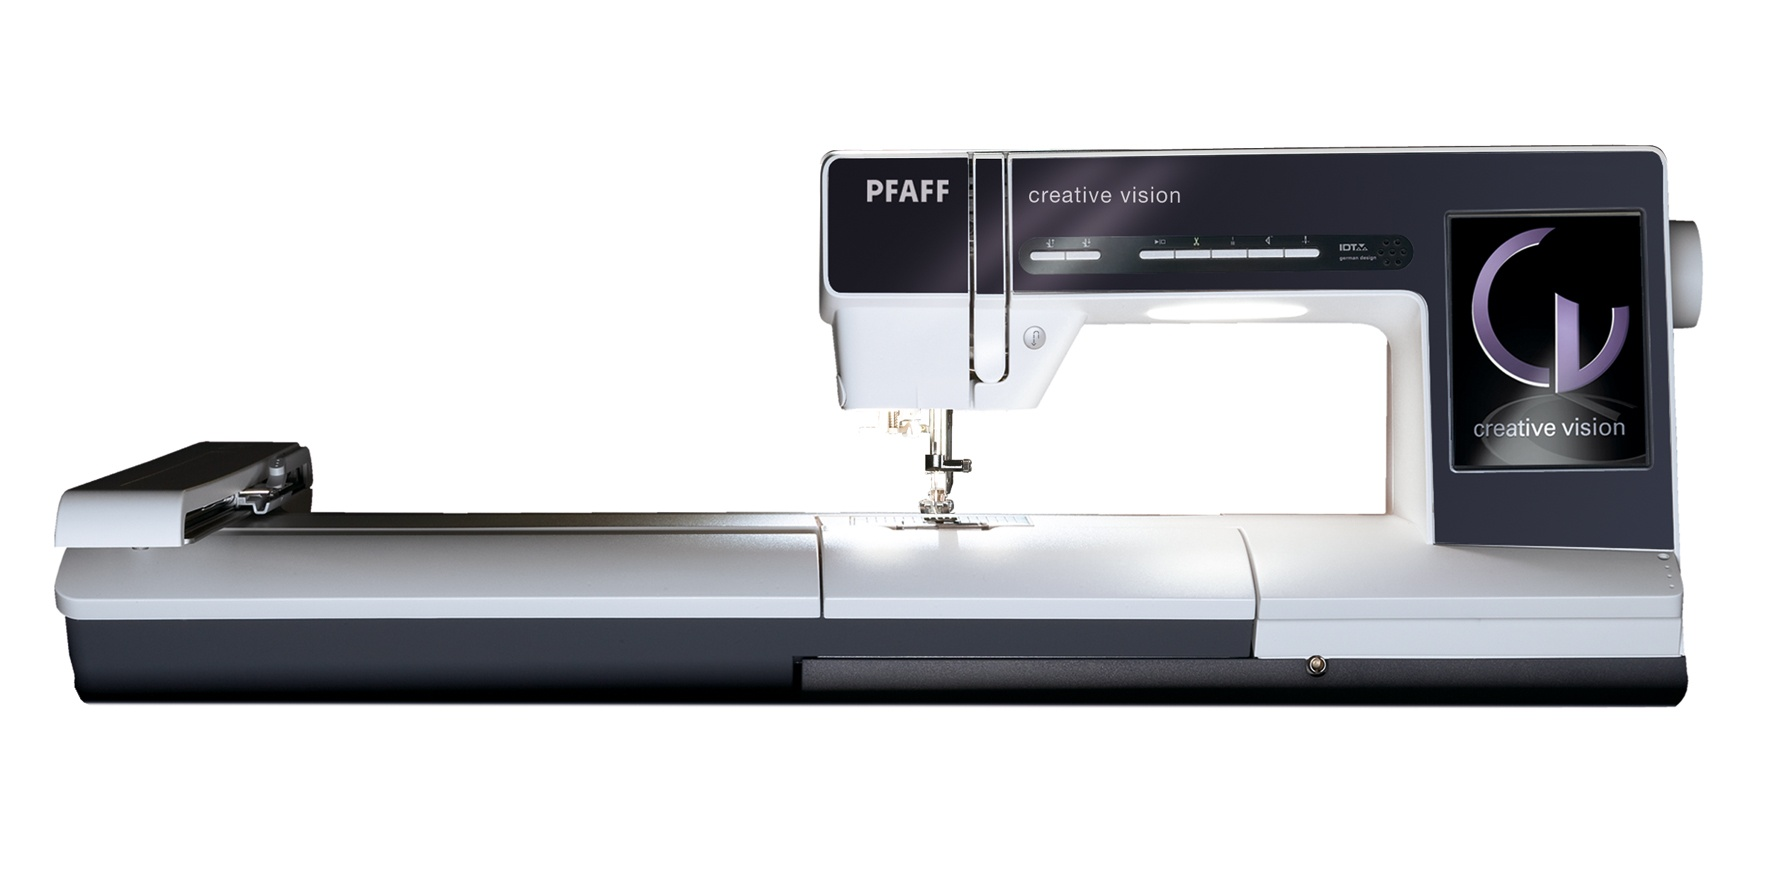 Pfaff - Embroidery Machines, Sewing Machines, Overlock Machines